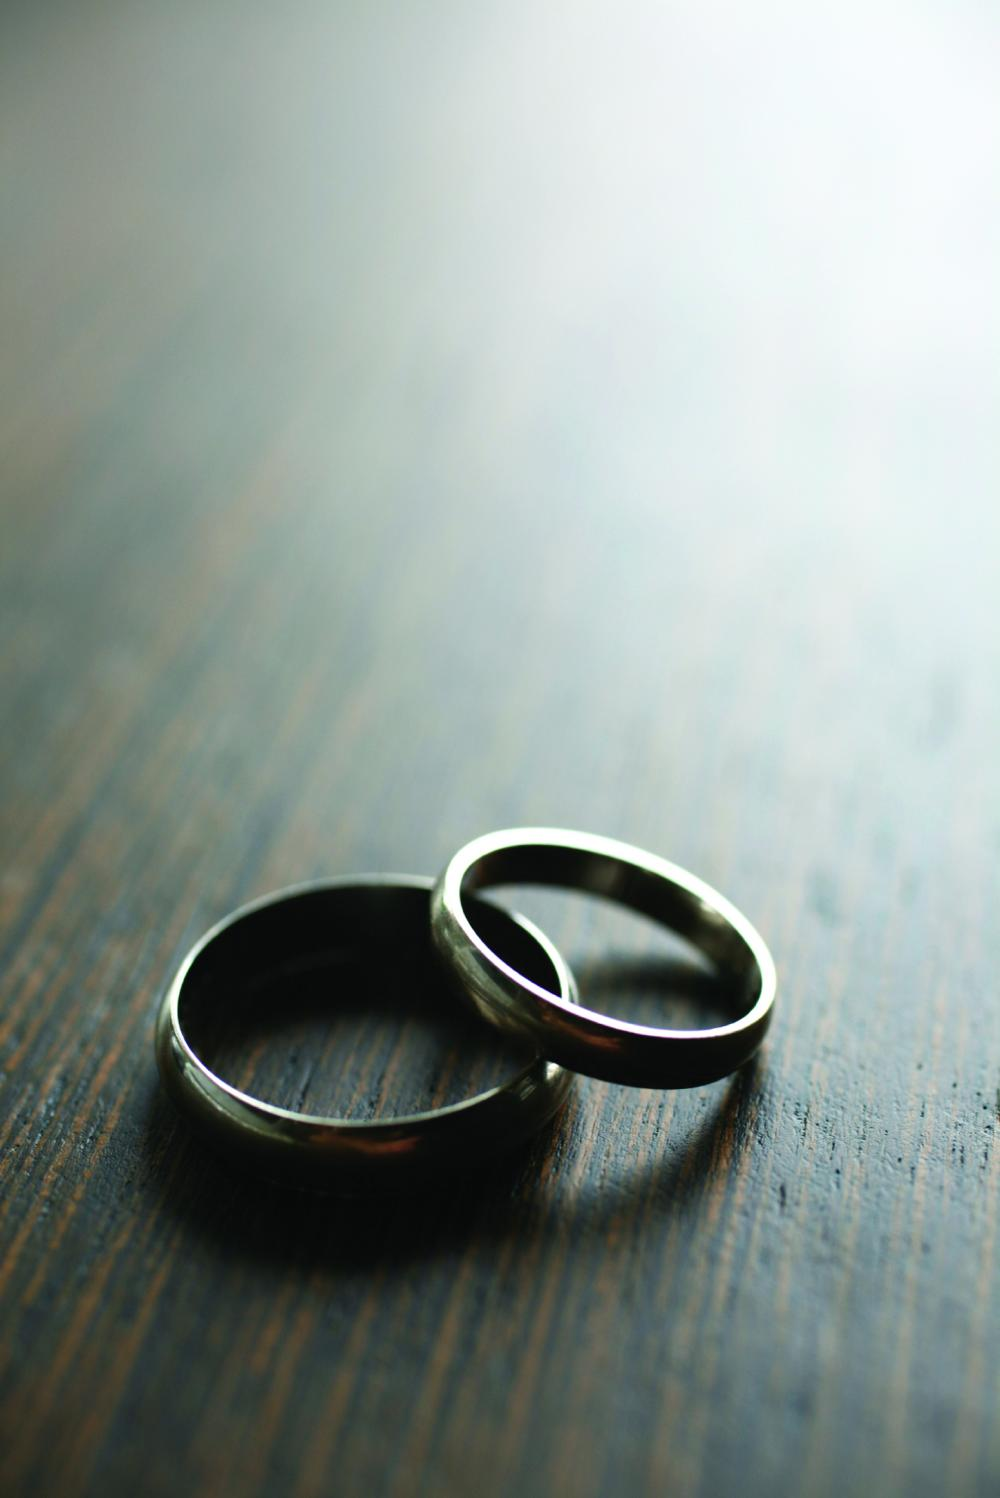 The other vocation crisis - marriage